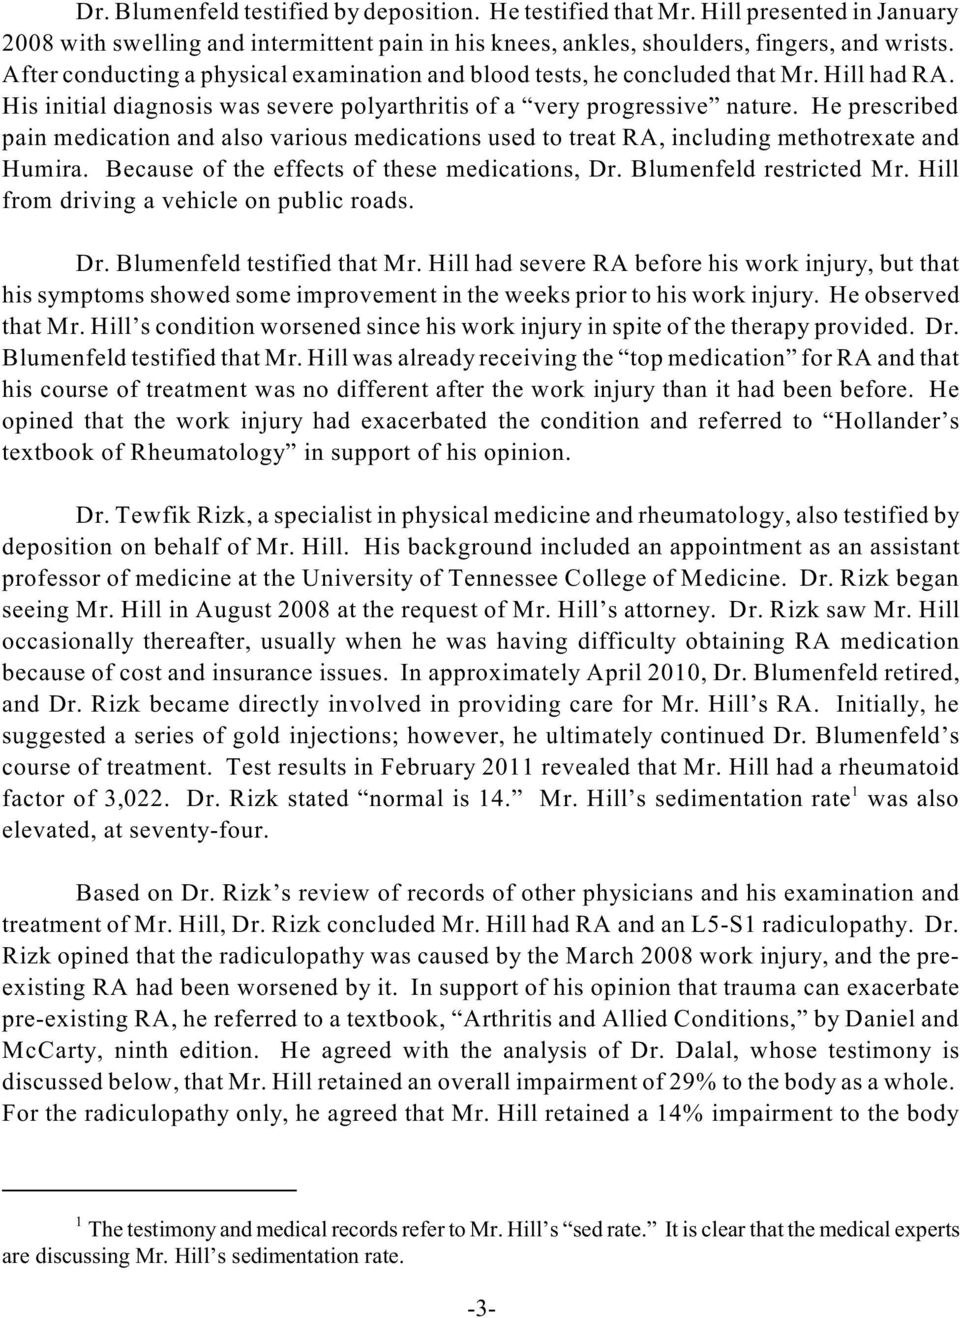 He prescribed pain medication and also various medications used to treat RA, including methotrexate and Humira. Because of the effects of these medications, Dr. Blumenfeld restricted Mr.